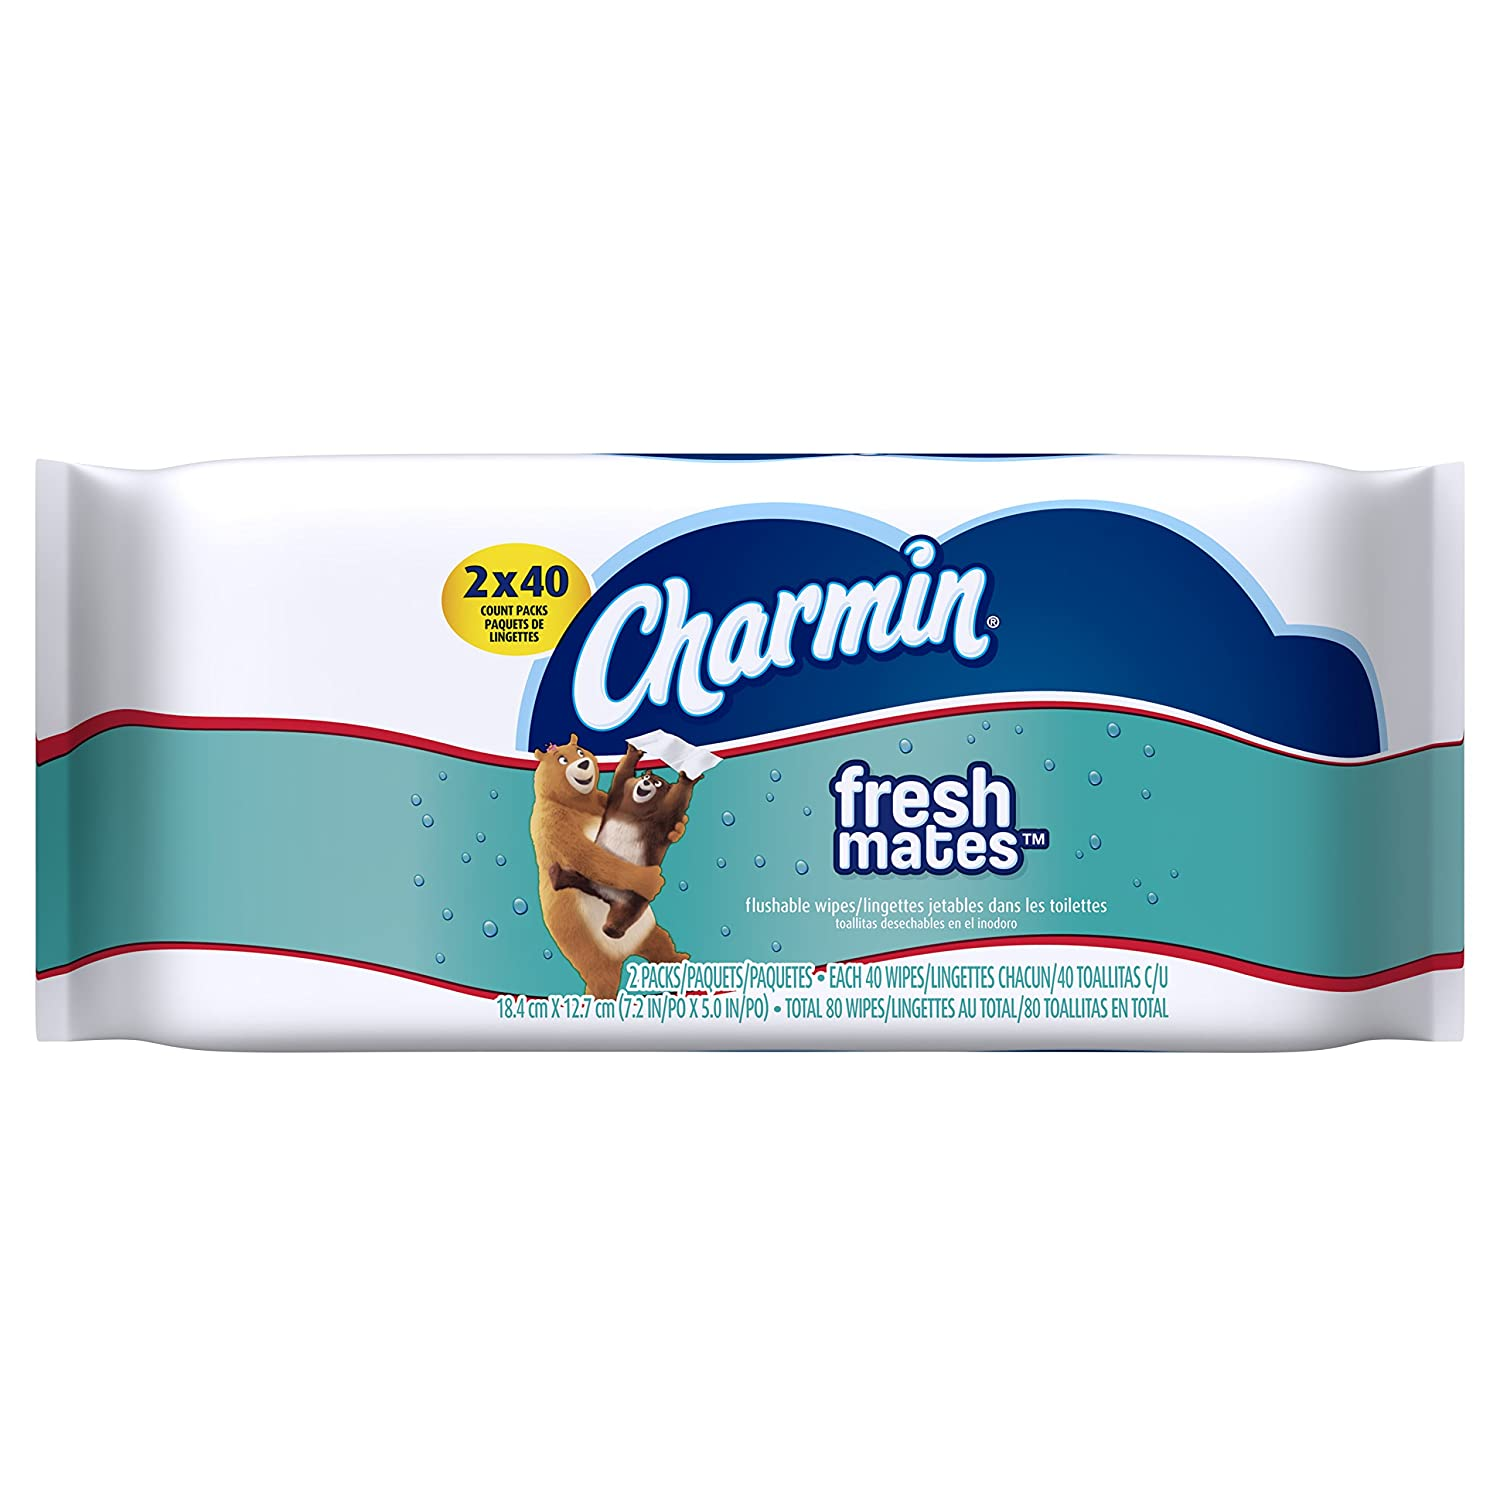 Amazon.com: Charmin Freshmates 80 Count Refill Pack (2 sets of 40 Count Fresh Wipes) Pack of 6.: Health & Personal Care